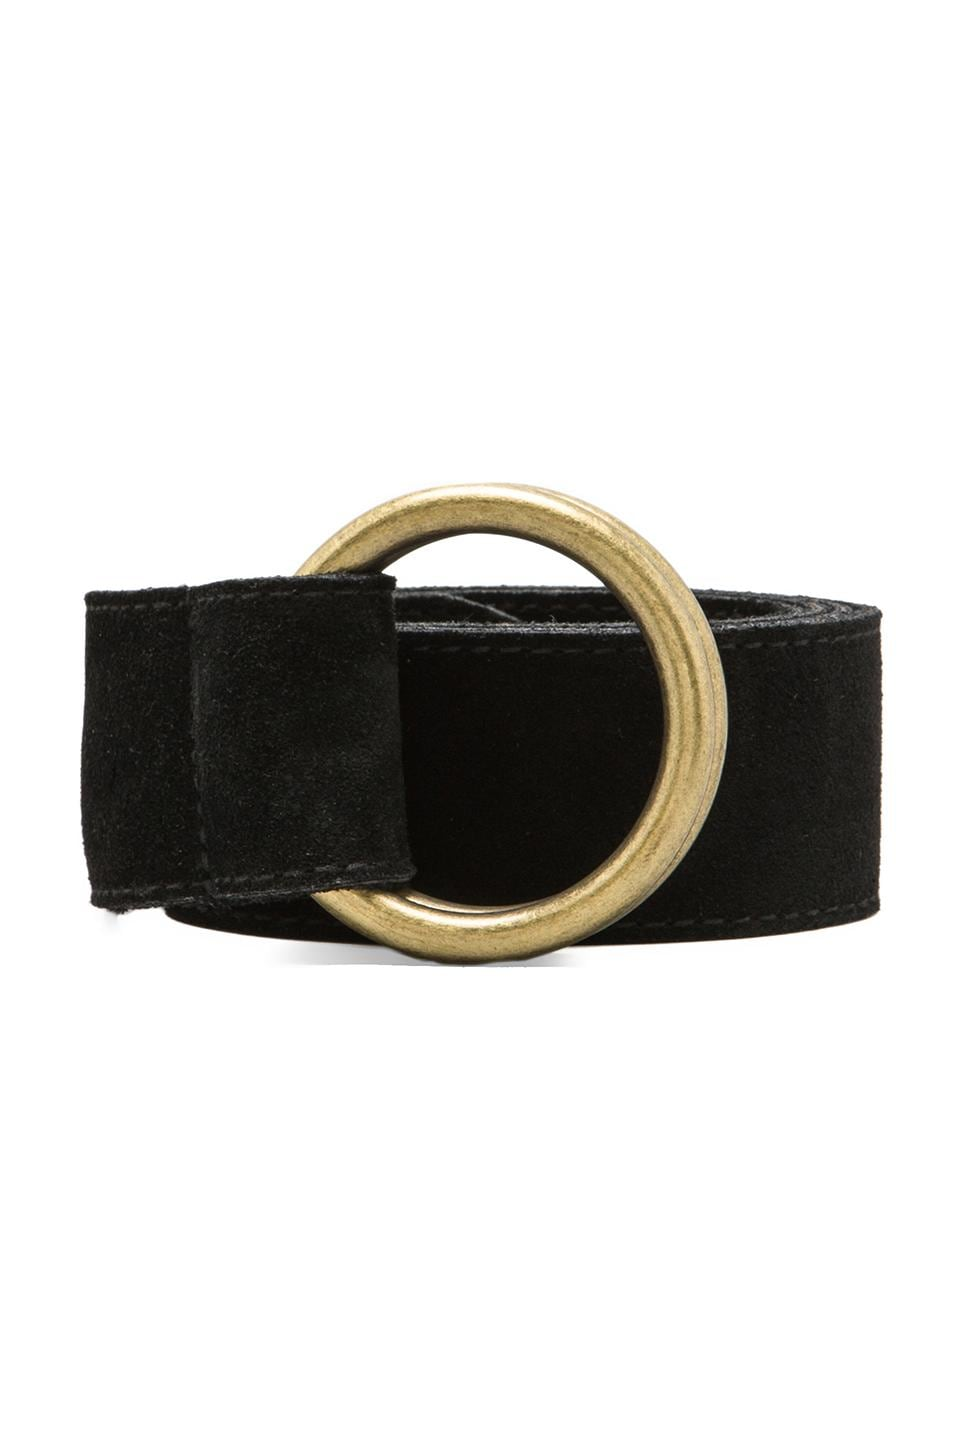 Rachel Pally Suede Belt in Black